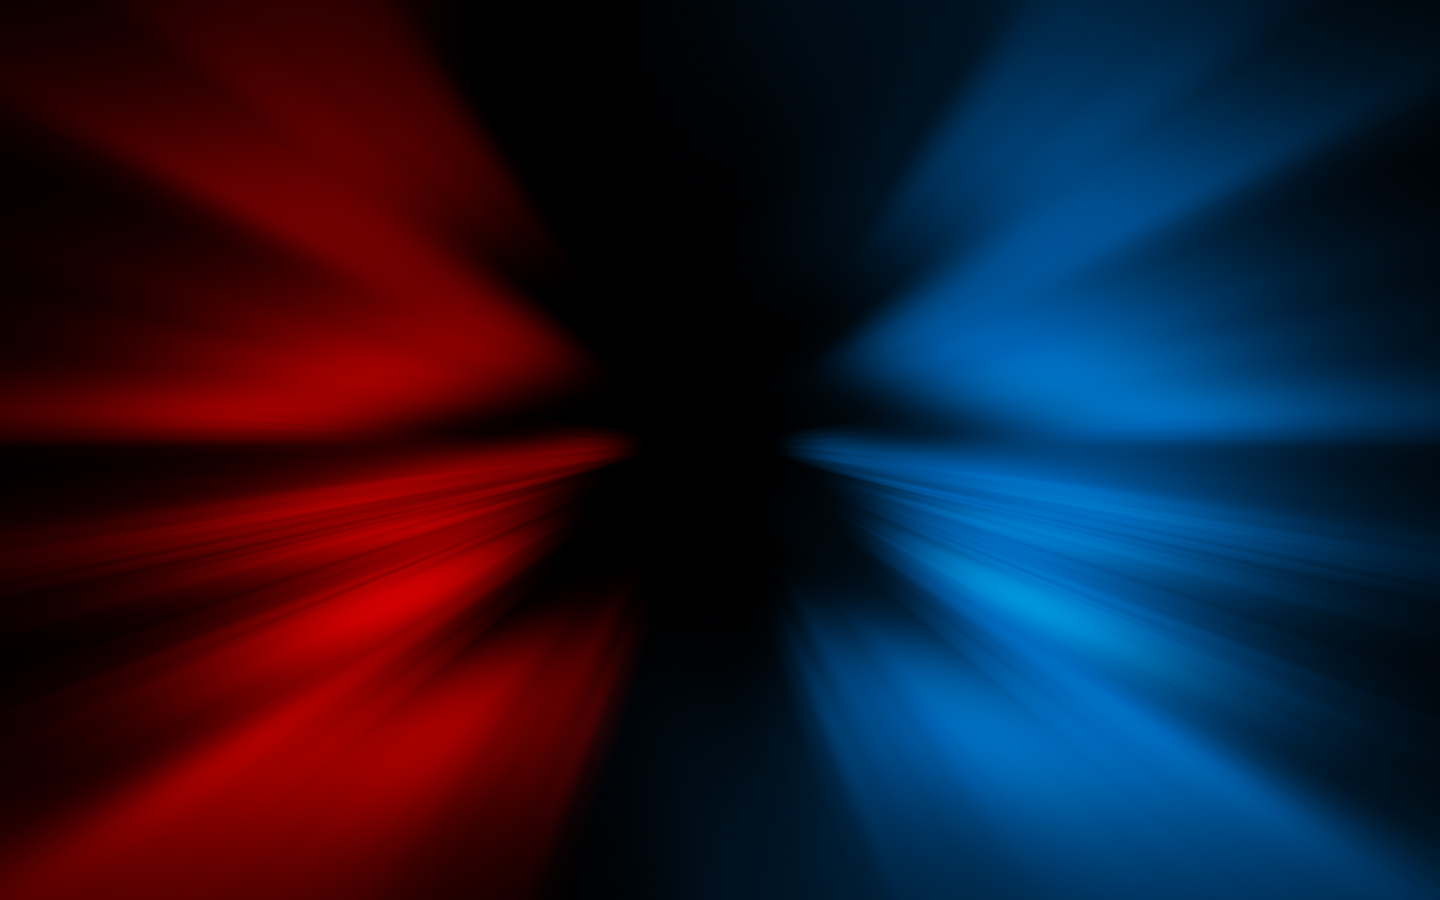 Free Download Red Blue Desktop By Flamingclaw 1440x900 For